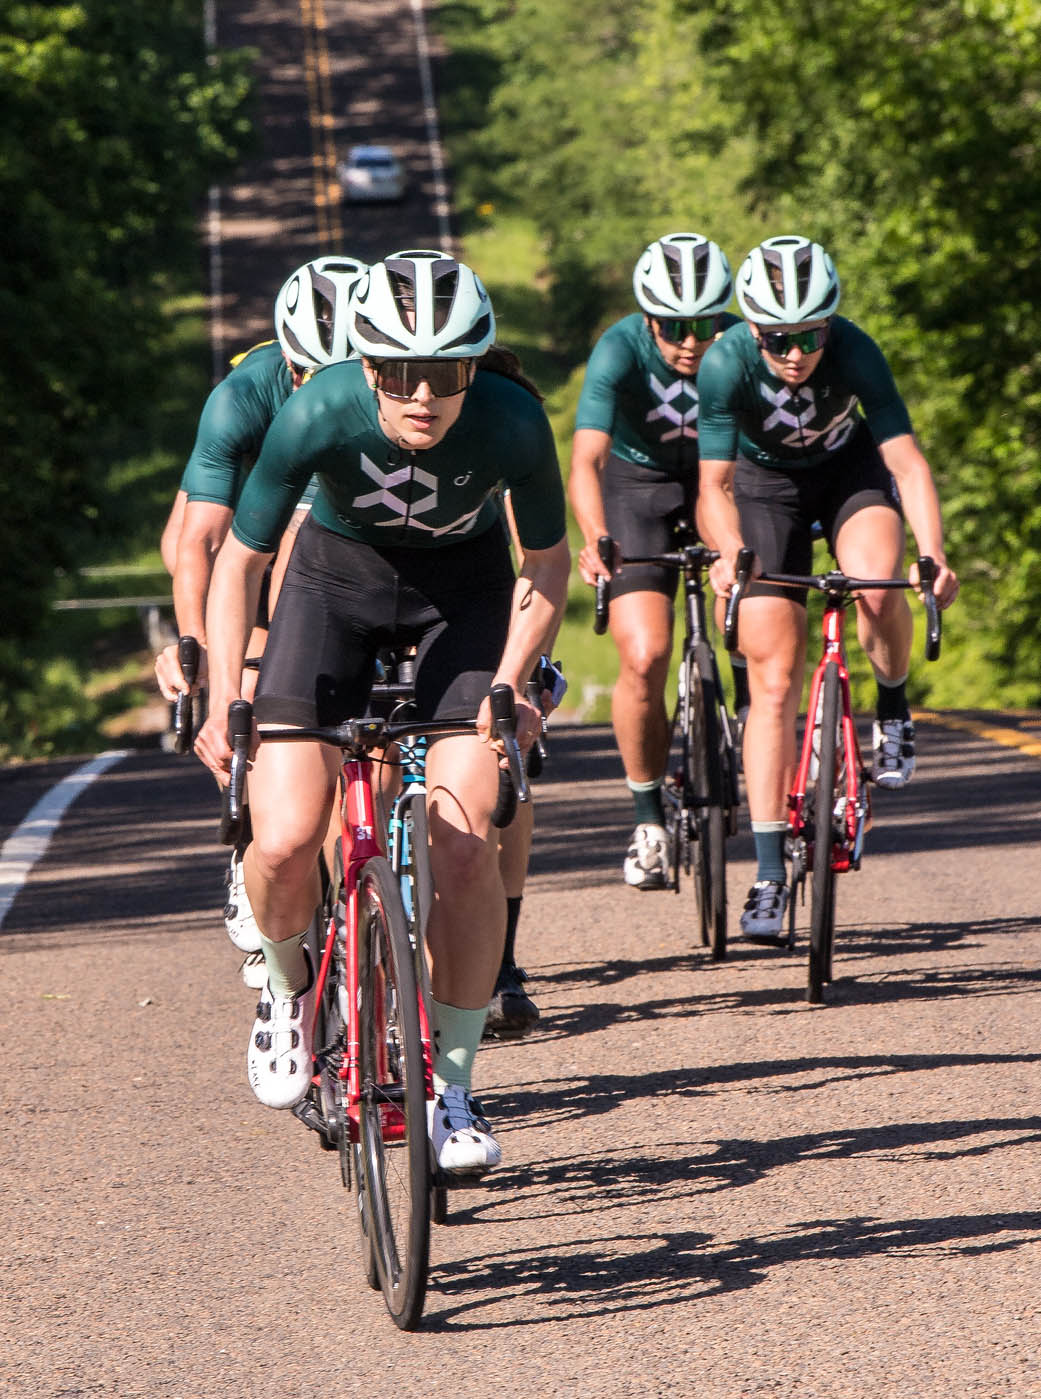 Kathleen Abadie and cycling team riding up hill